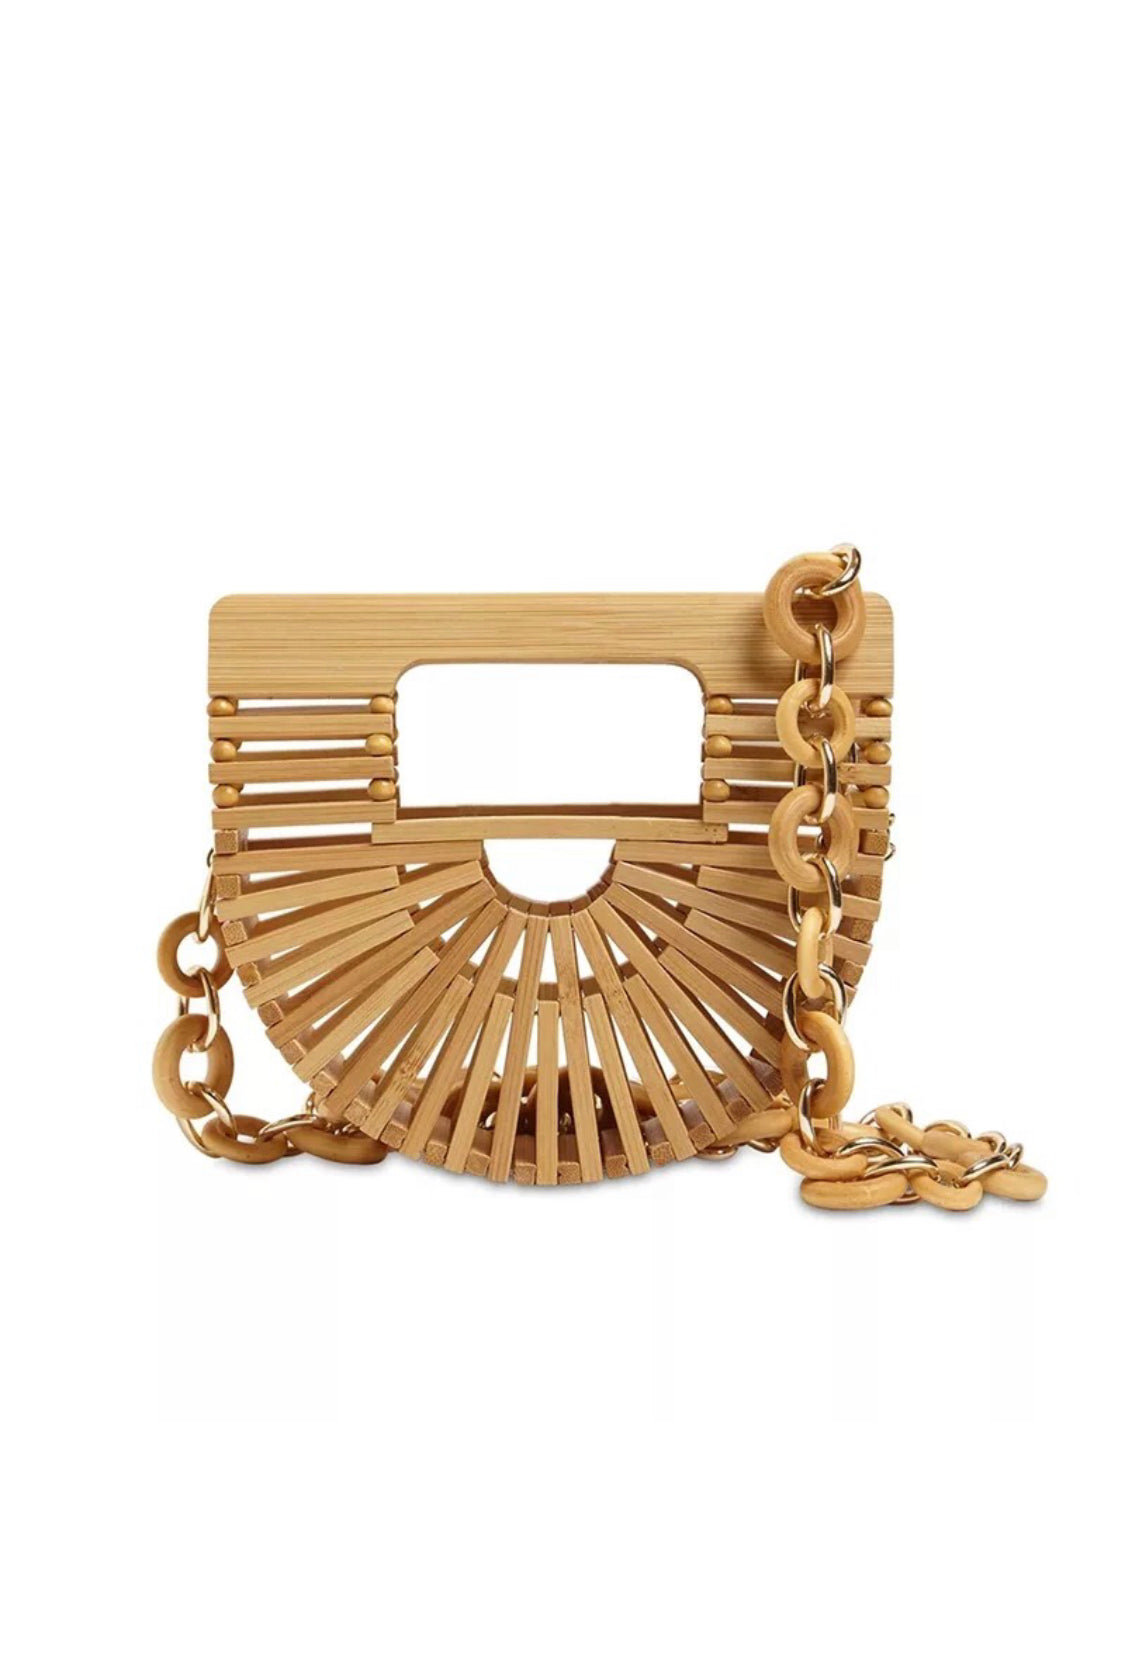 Bamboo Croissant Waist Belt/Shoulder Bag (RESTOCKING SAT., 5/15 @10AM EST)